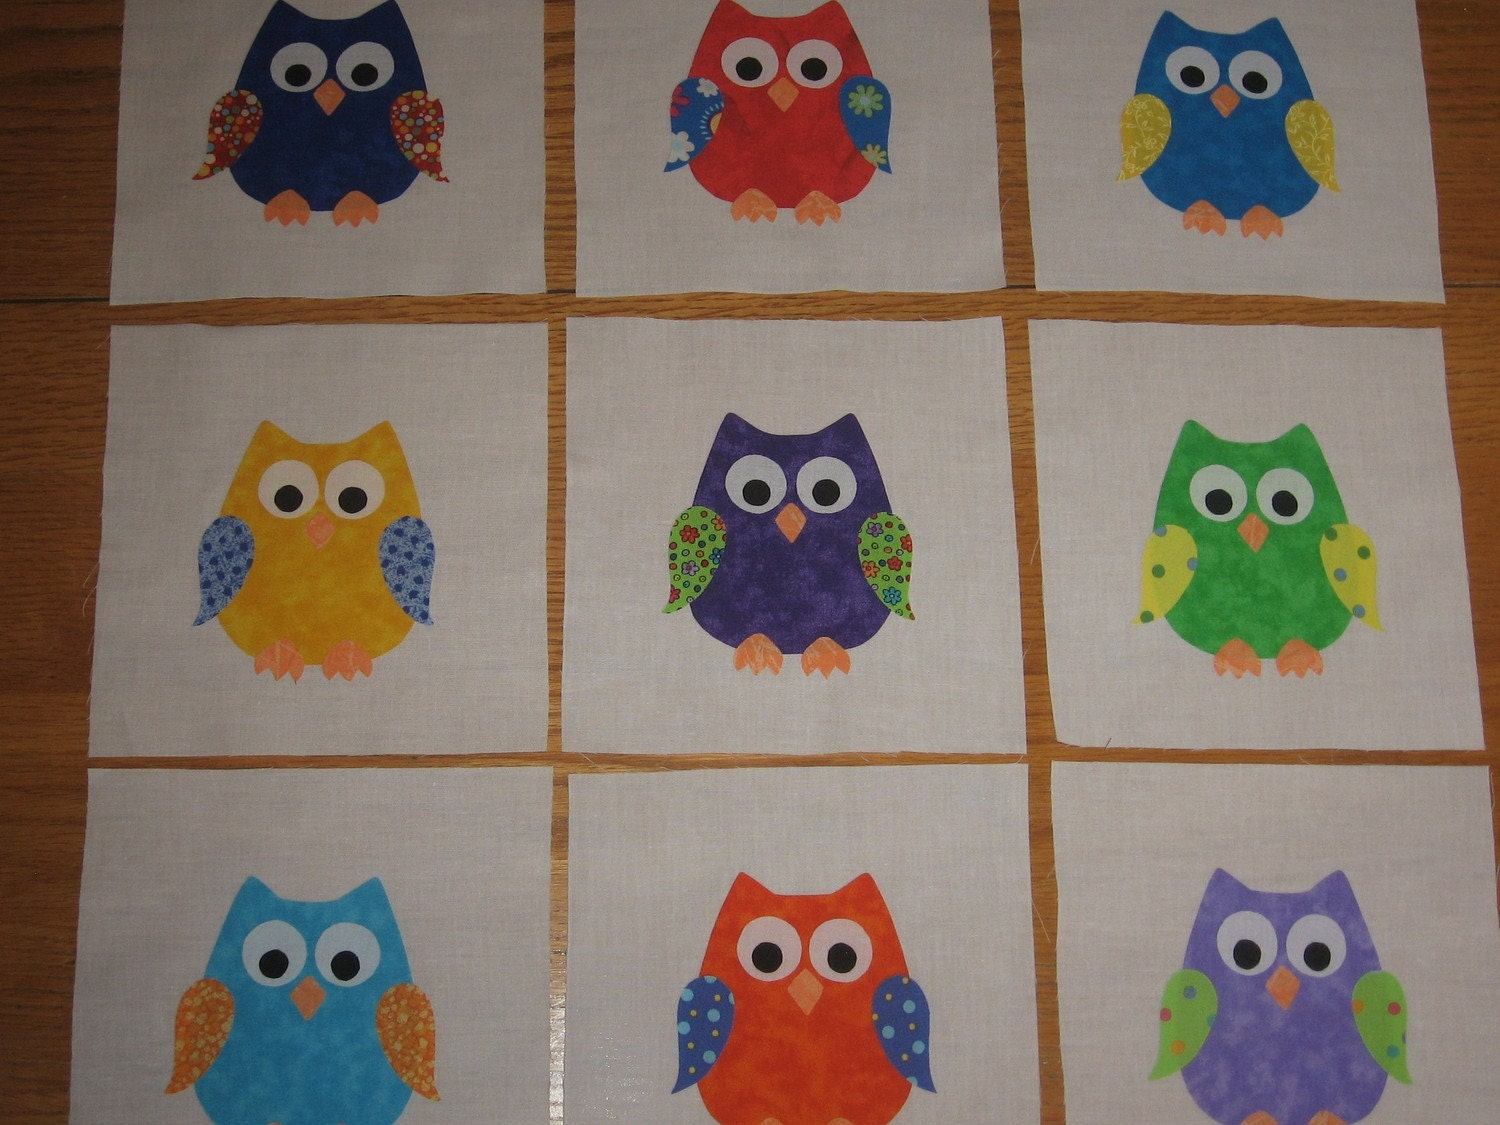 Free Quilt Pattern For Owls : OWLS Applique Quilt Blocks